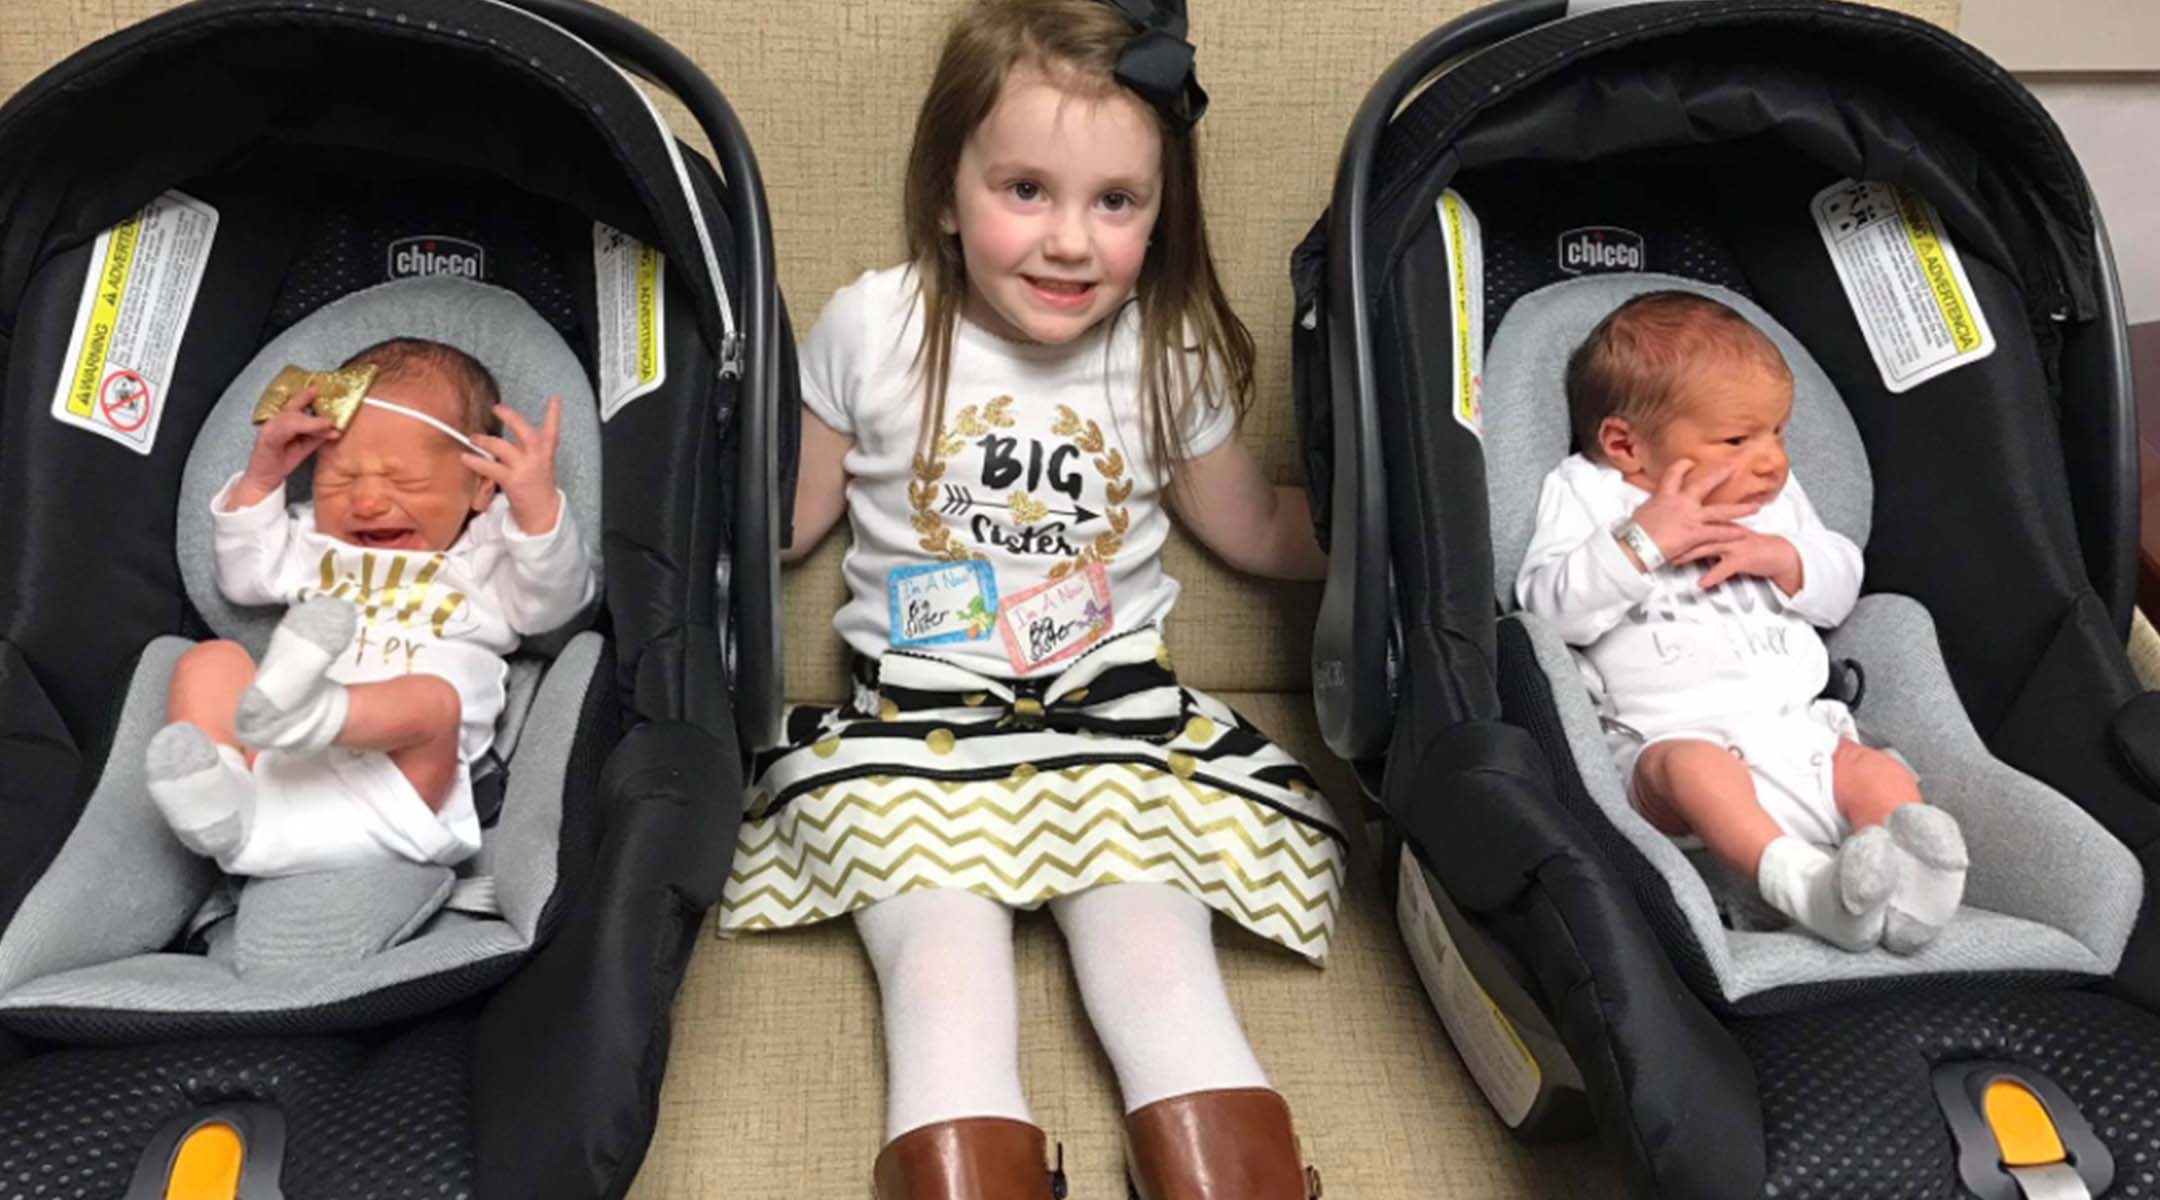 Maxi Cosi Car Seat Infant Big Sister Reacts To Crying Twins In Car Seats Video